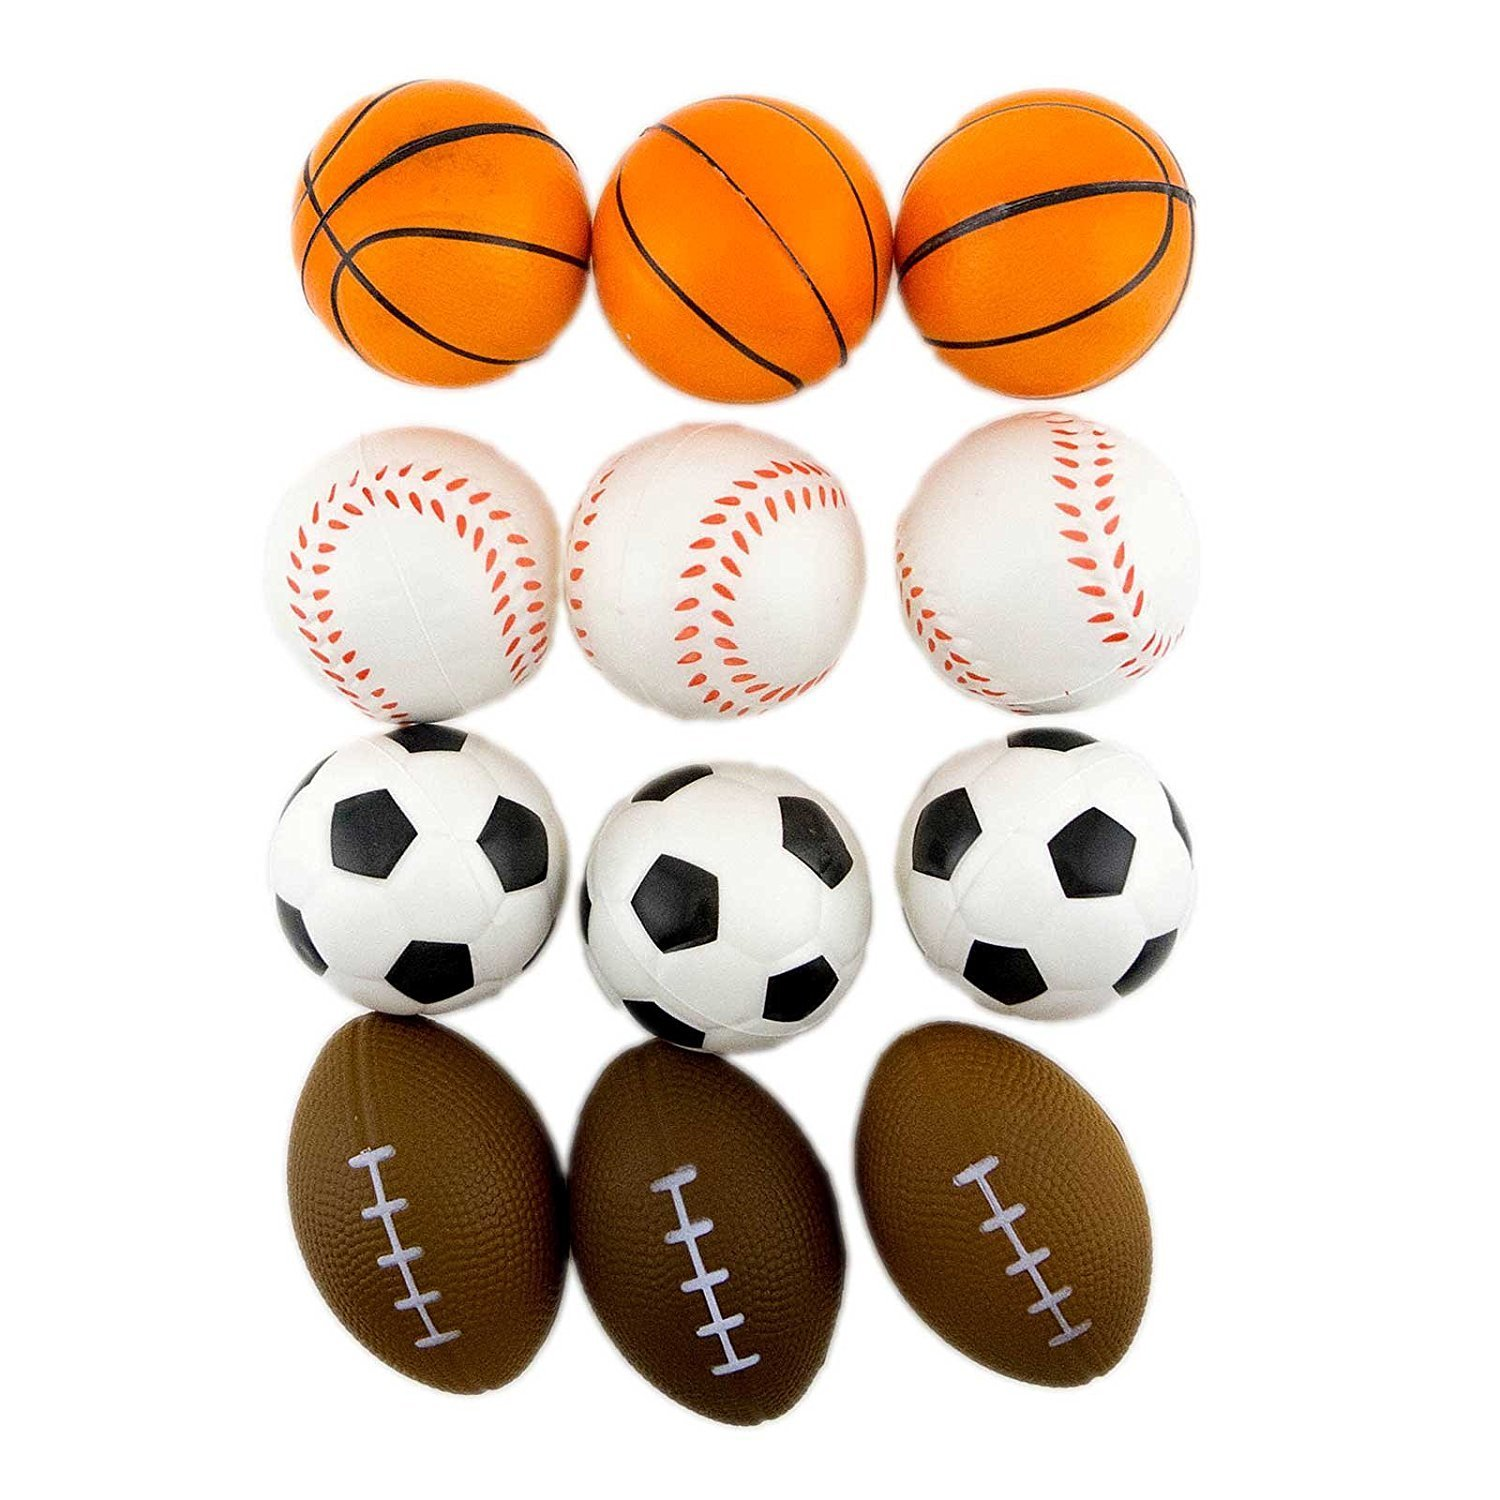 12 Stress Sport Ball Sponge Balls Foam Ball Basketball Football Soccer Baseball, Squeeze... by